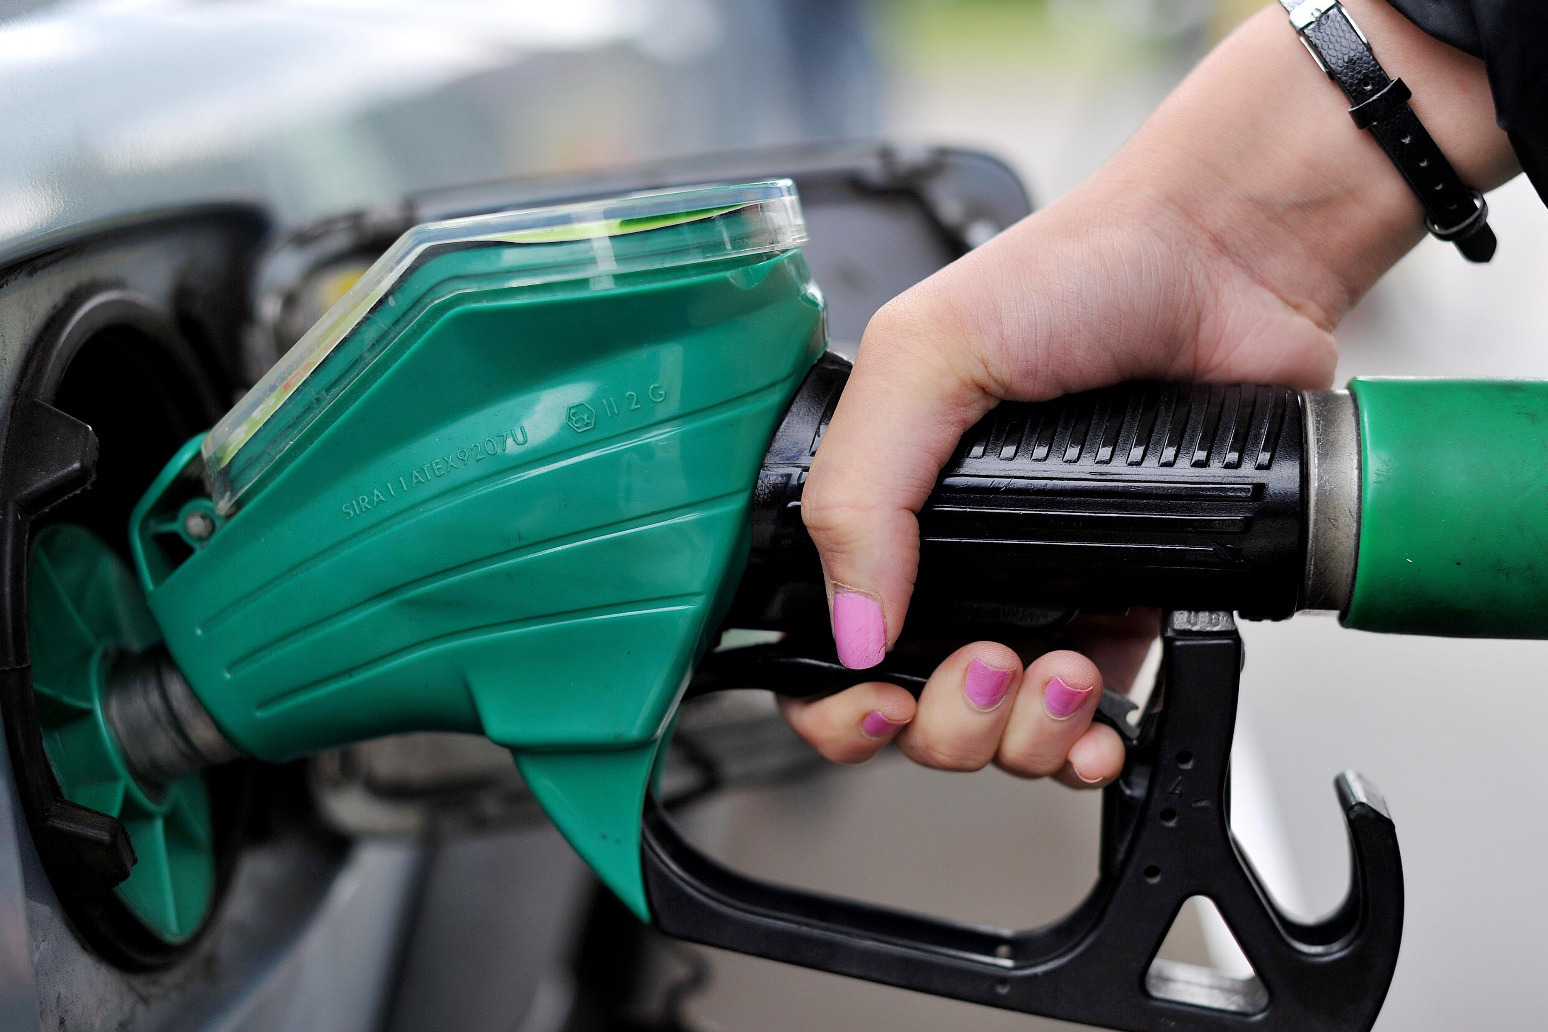 'No need to panic' about E10 fuel arriving next month, says AA